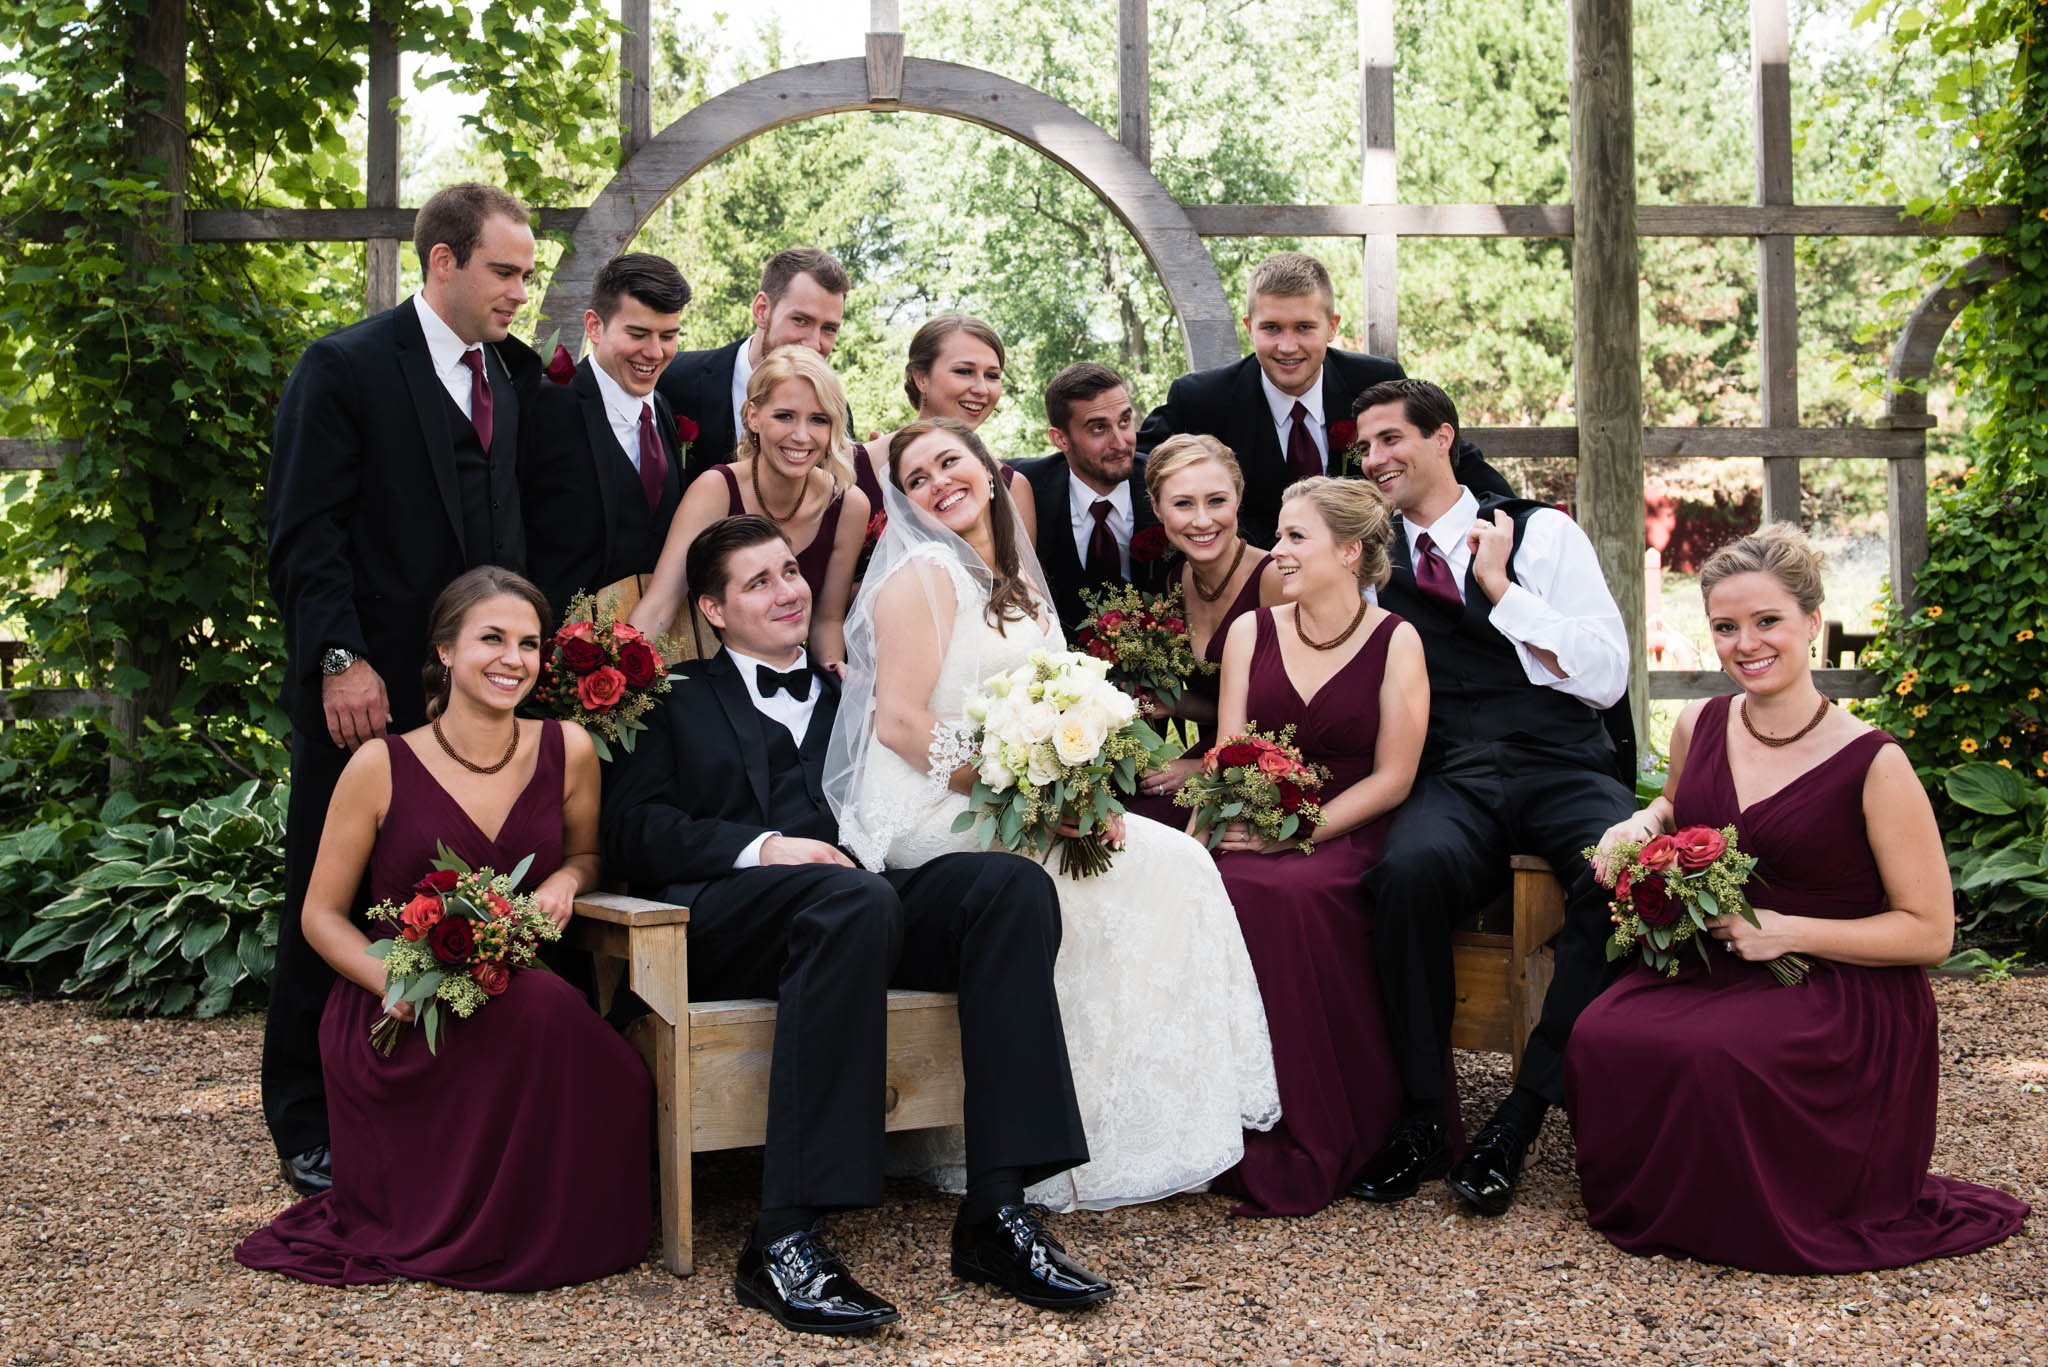 Bridal party portrait at Cantigny Park